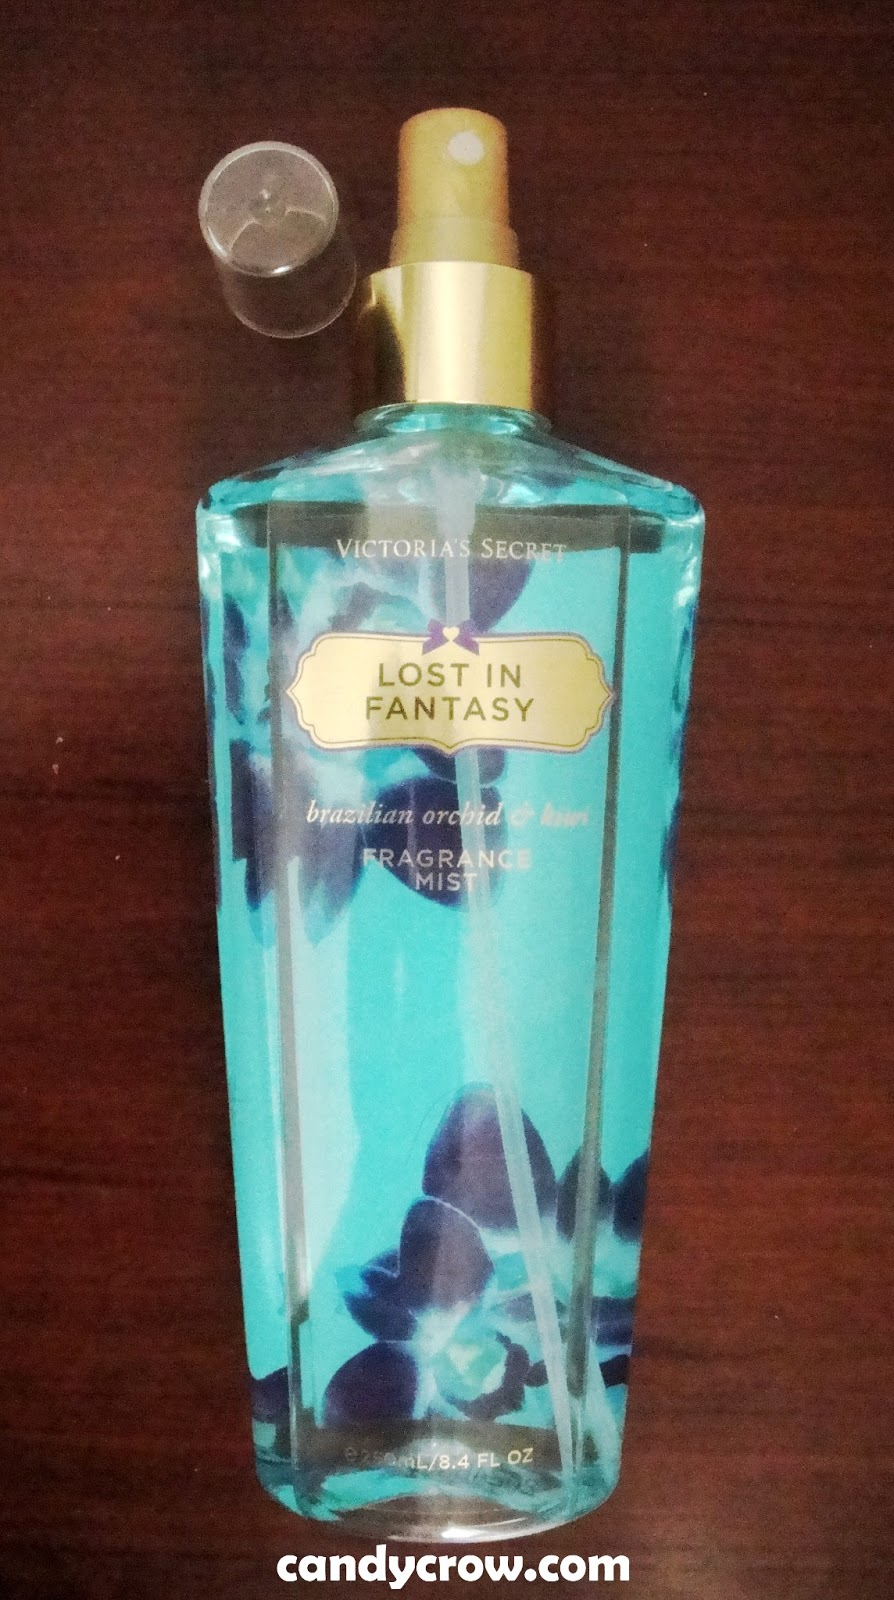 Victoria's Secret Lost In Fantasy Body Mist Review